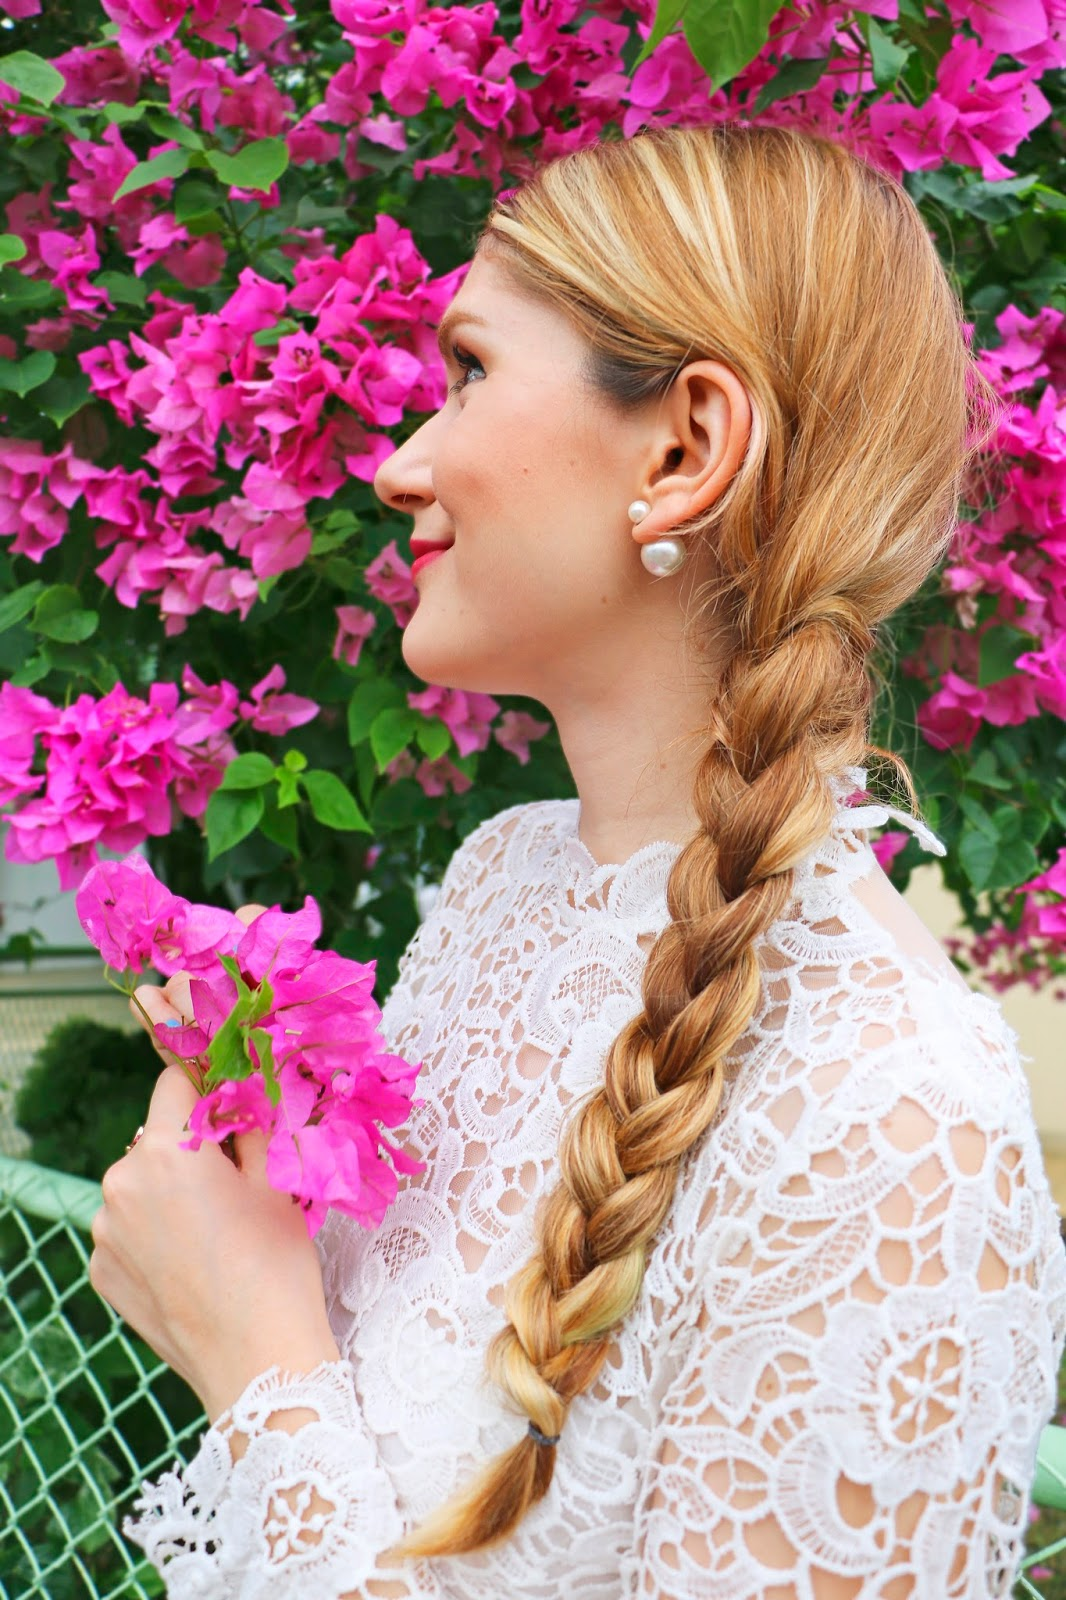 Girly sidebraid and pearl earrings